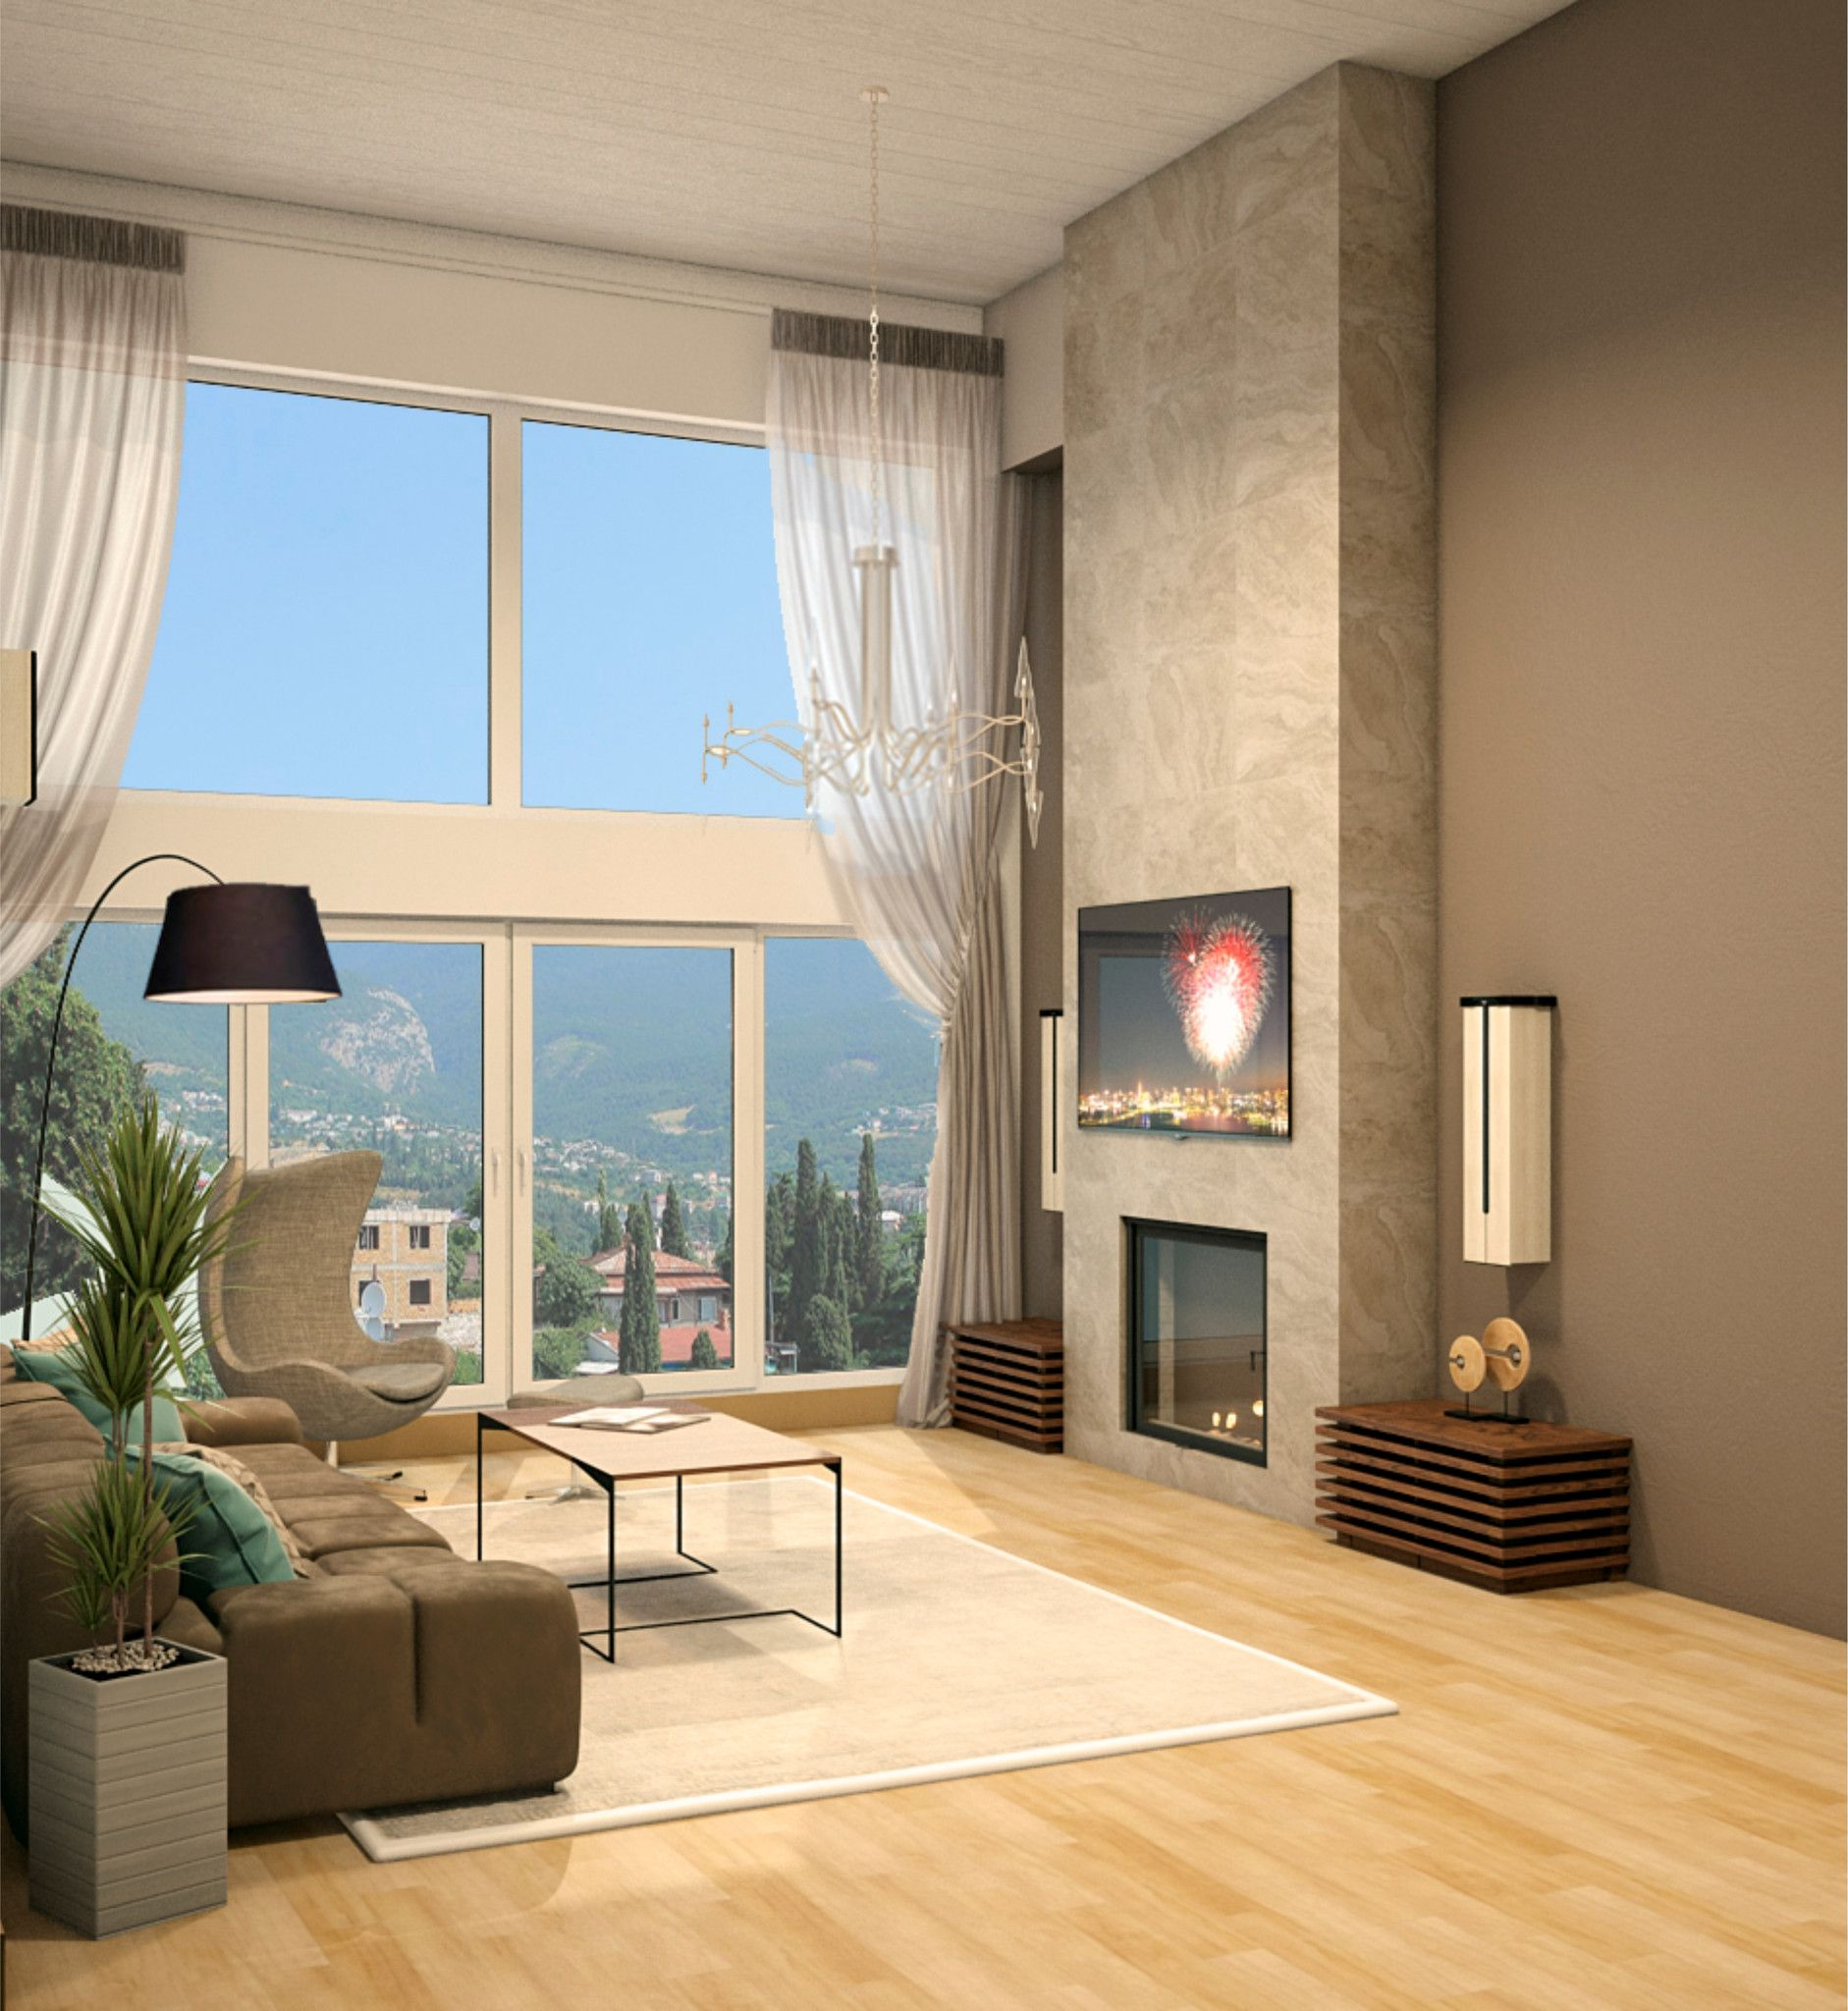 Living Room Design Online Alluring Thinking Of Shopping Emfurn But Not Sure How Your Room Will Appear Design Inspiration